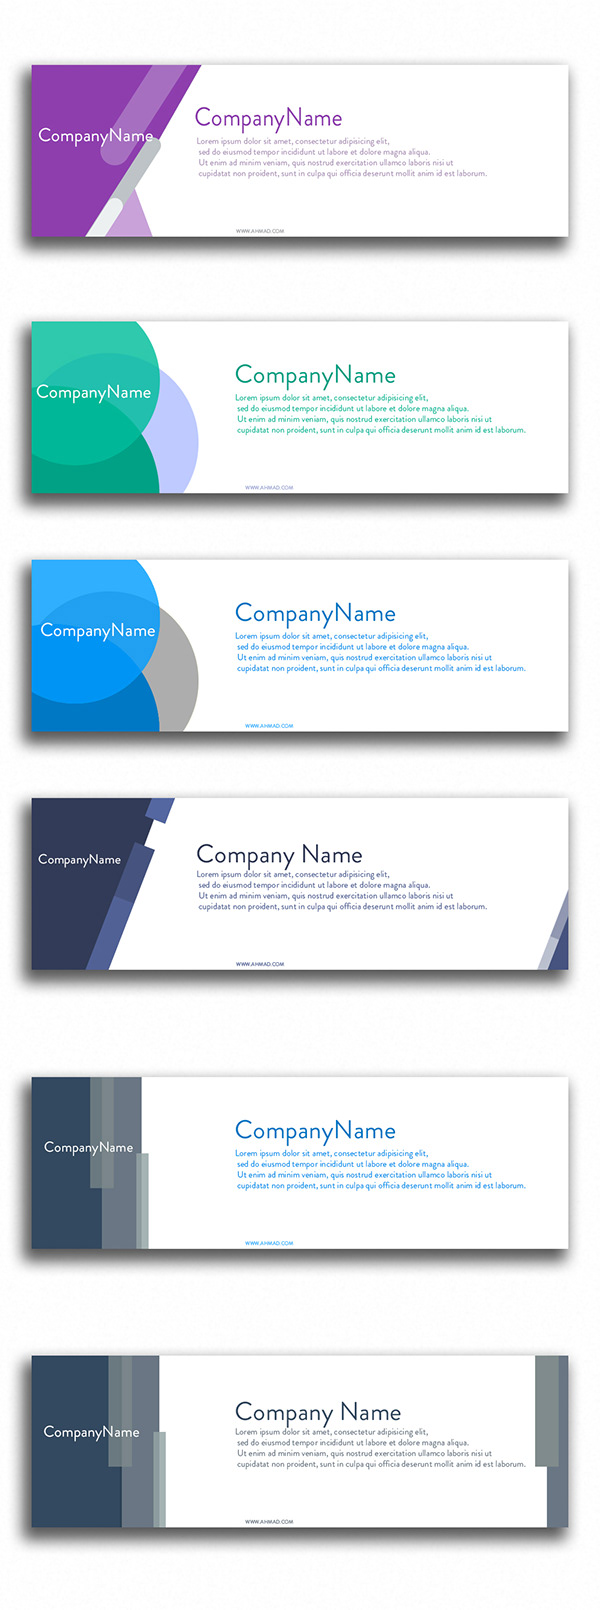 Banners ([FREE PSD)